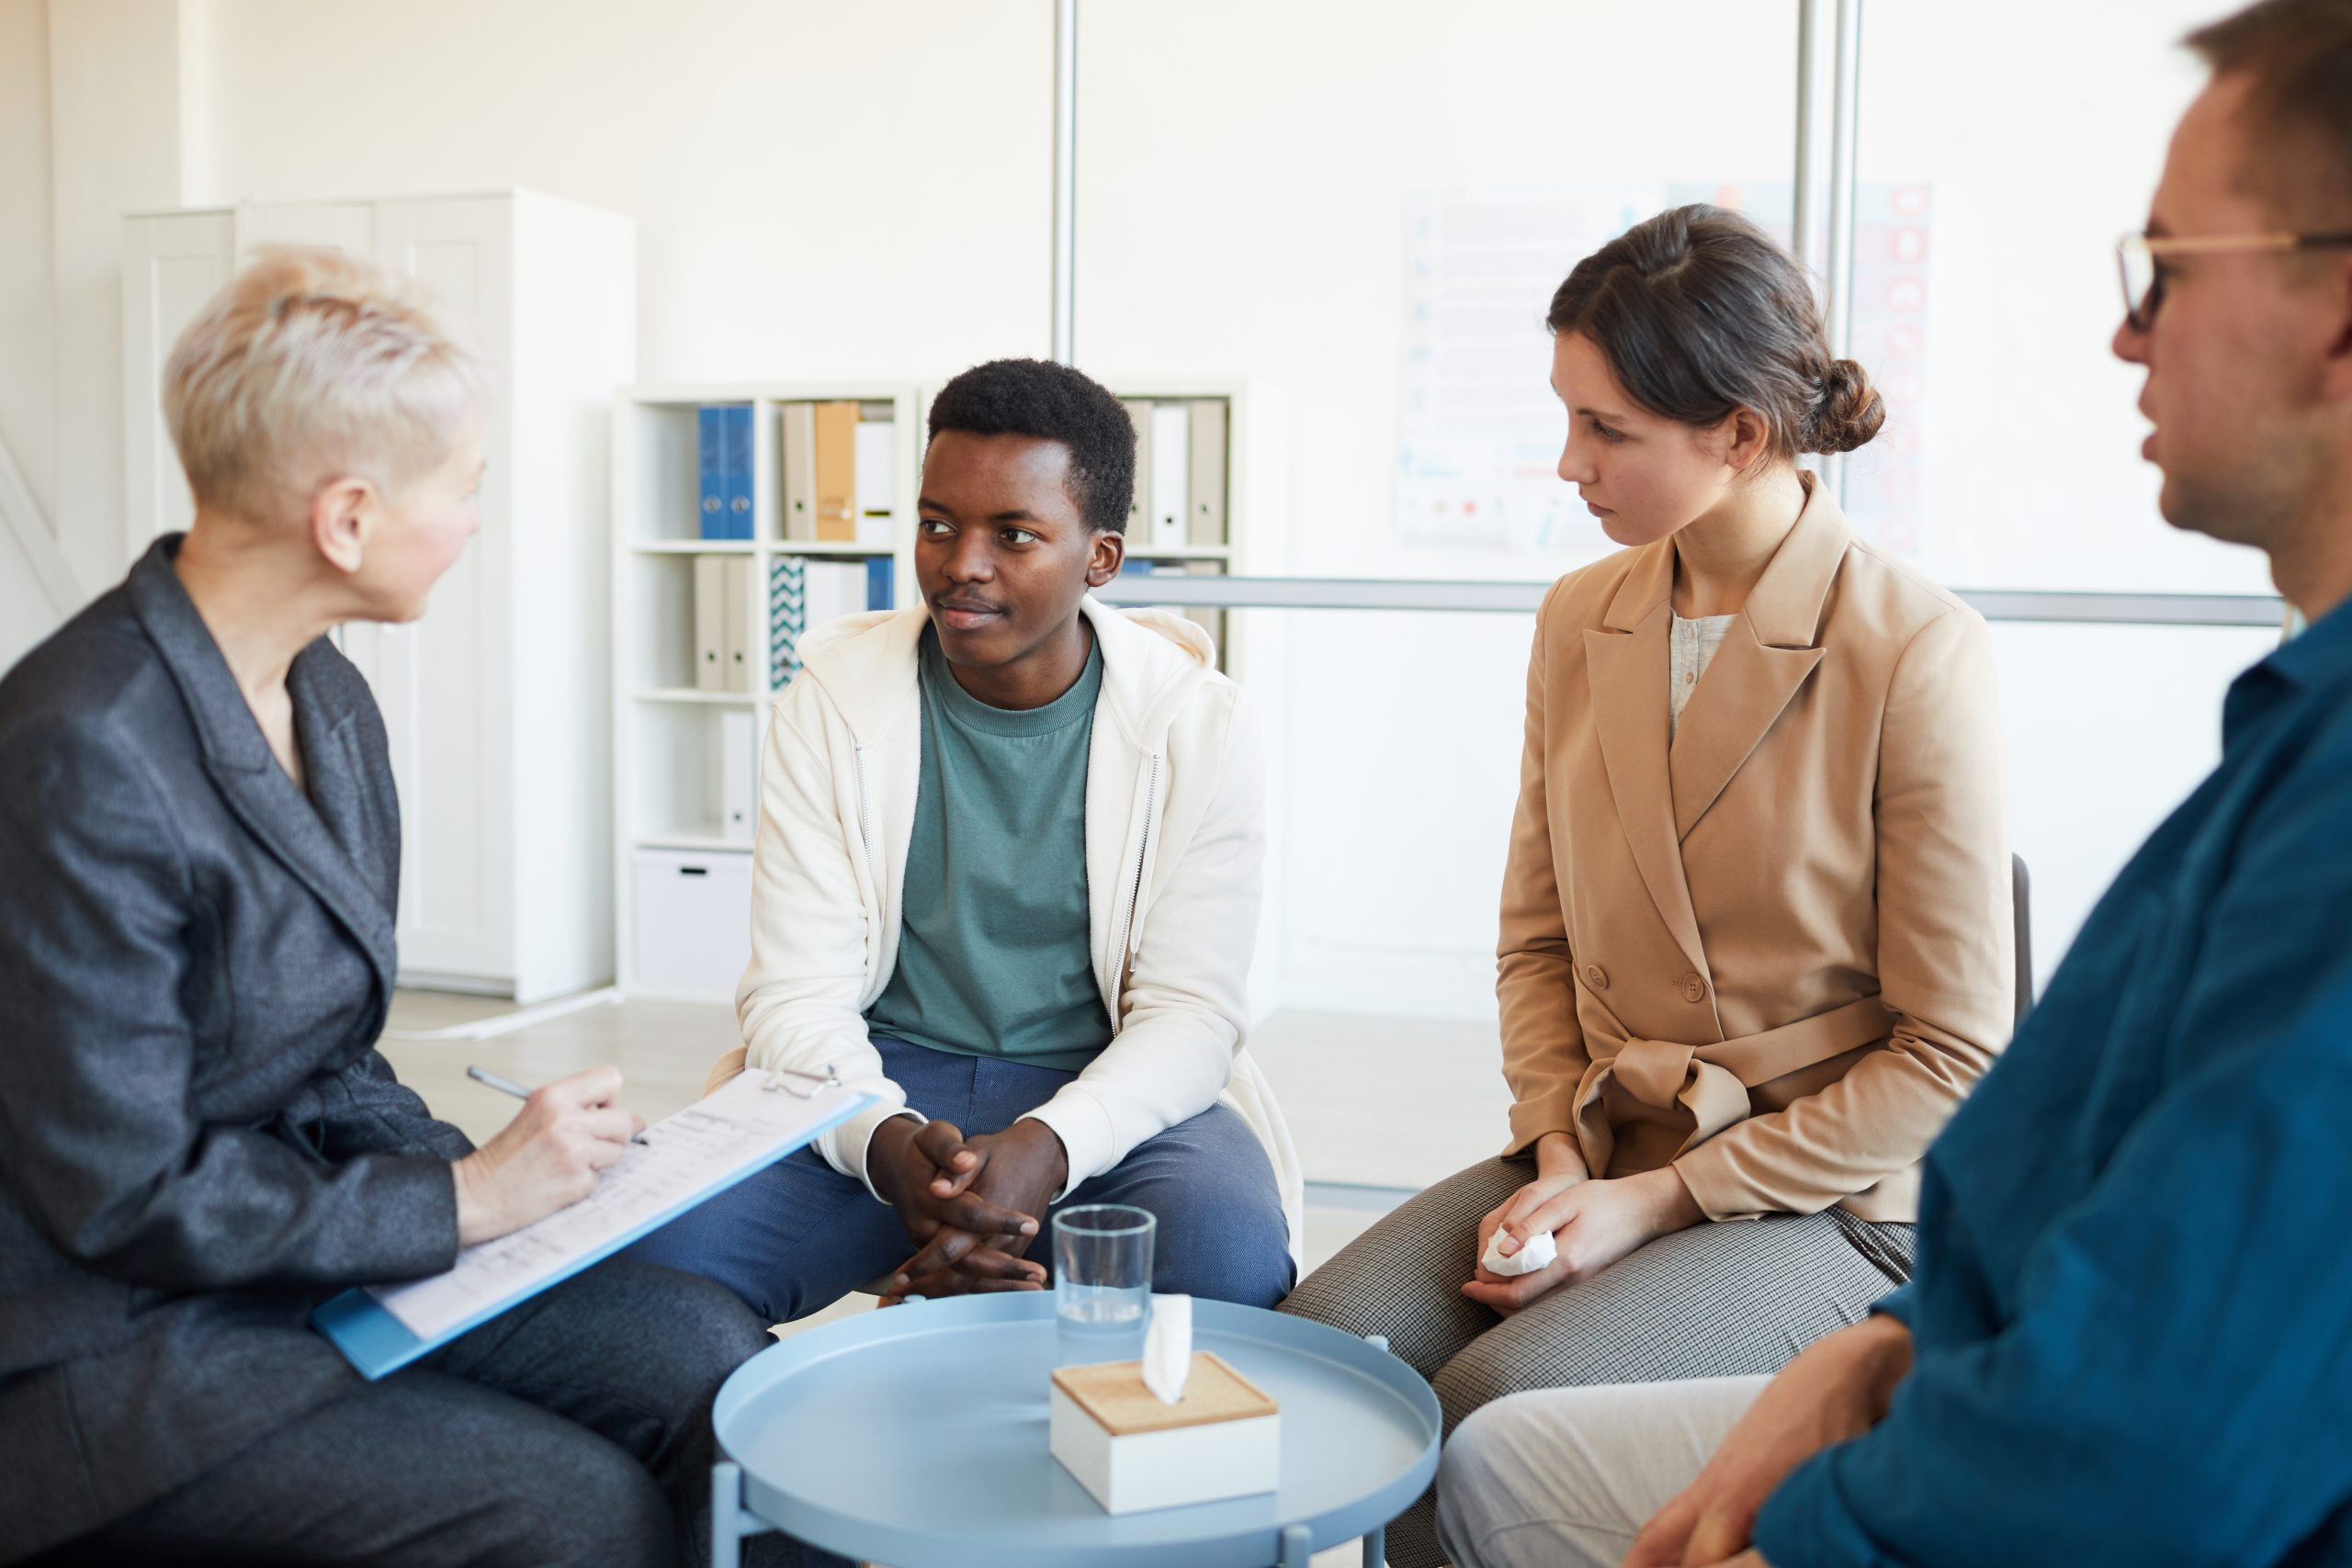 social worker salary, clinical social worker, masters in social work, how to be a social worker, bachelor of social work, social worker requirements